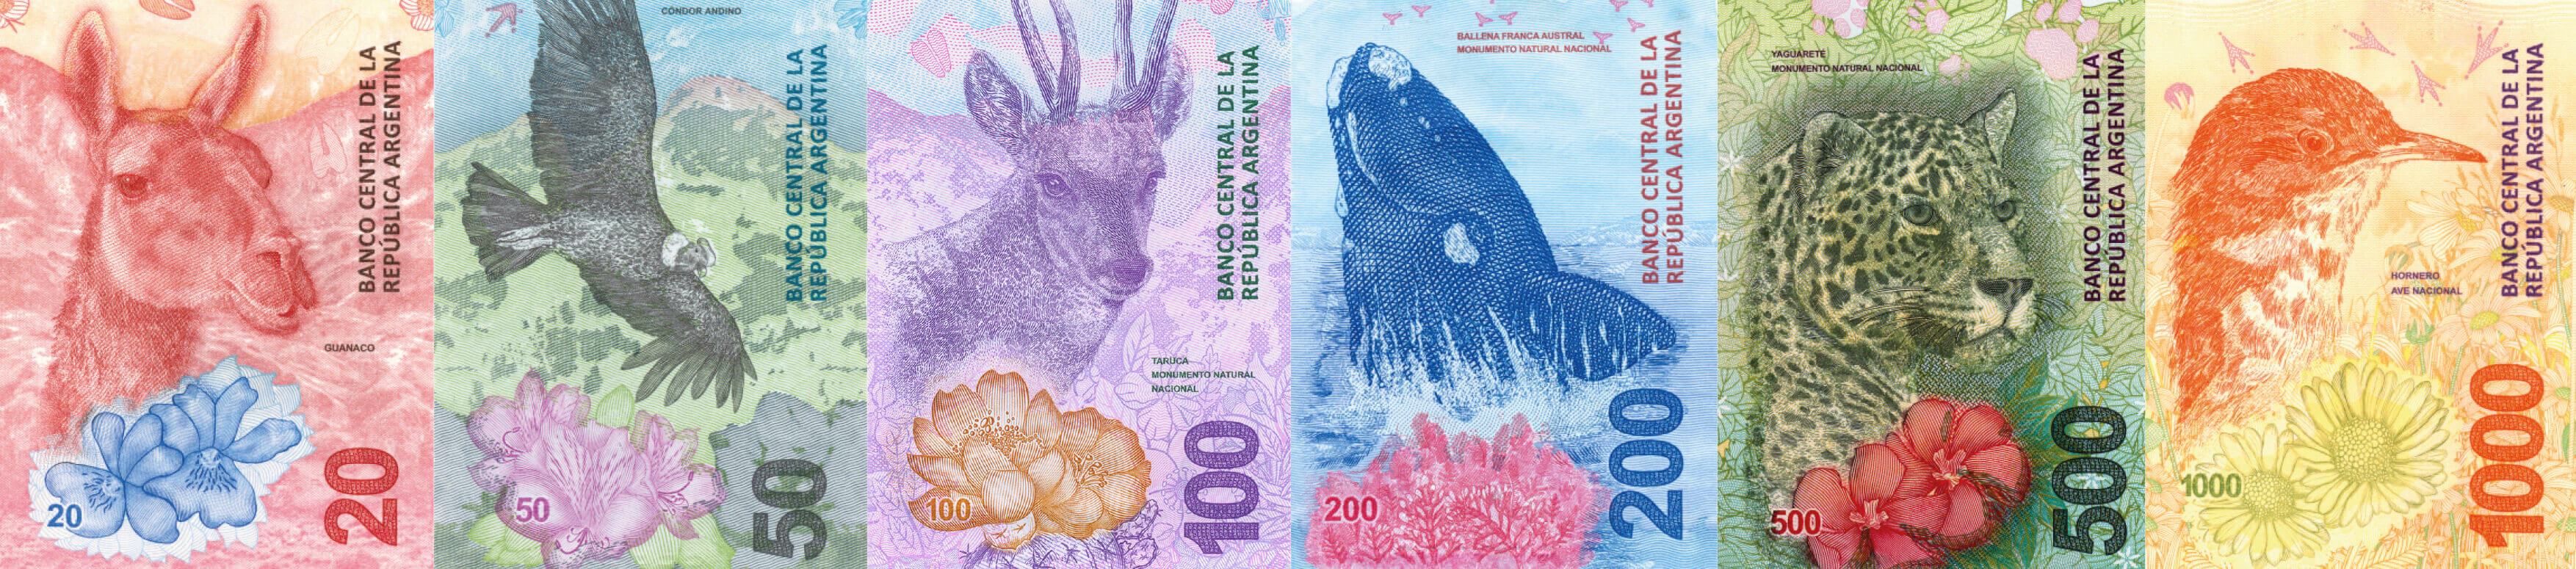 New Banknote Series Argentina's Fauna